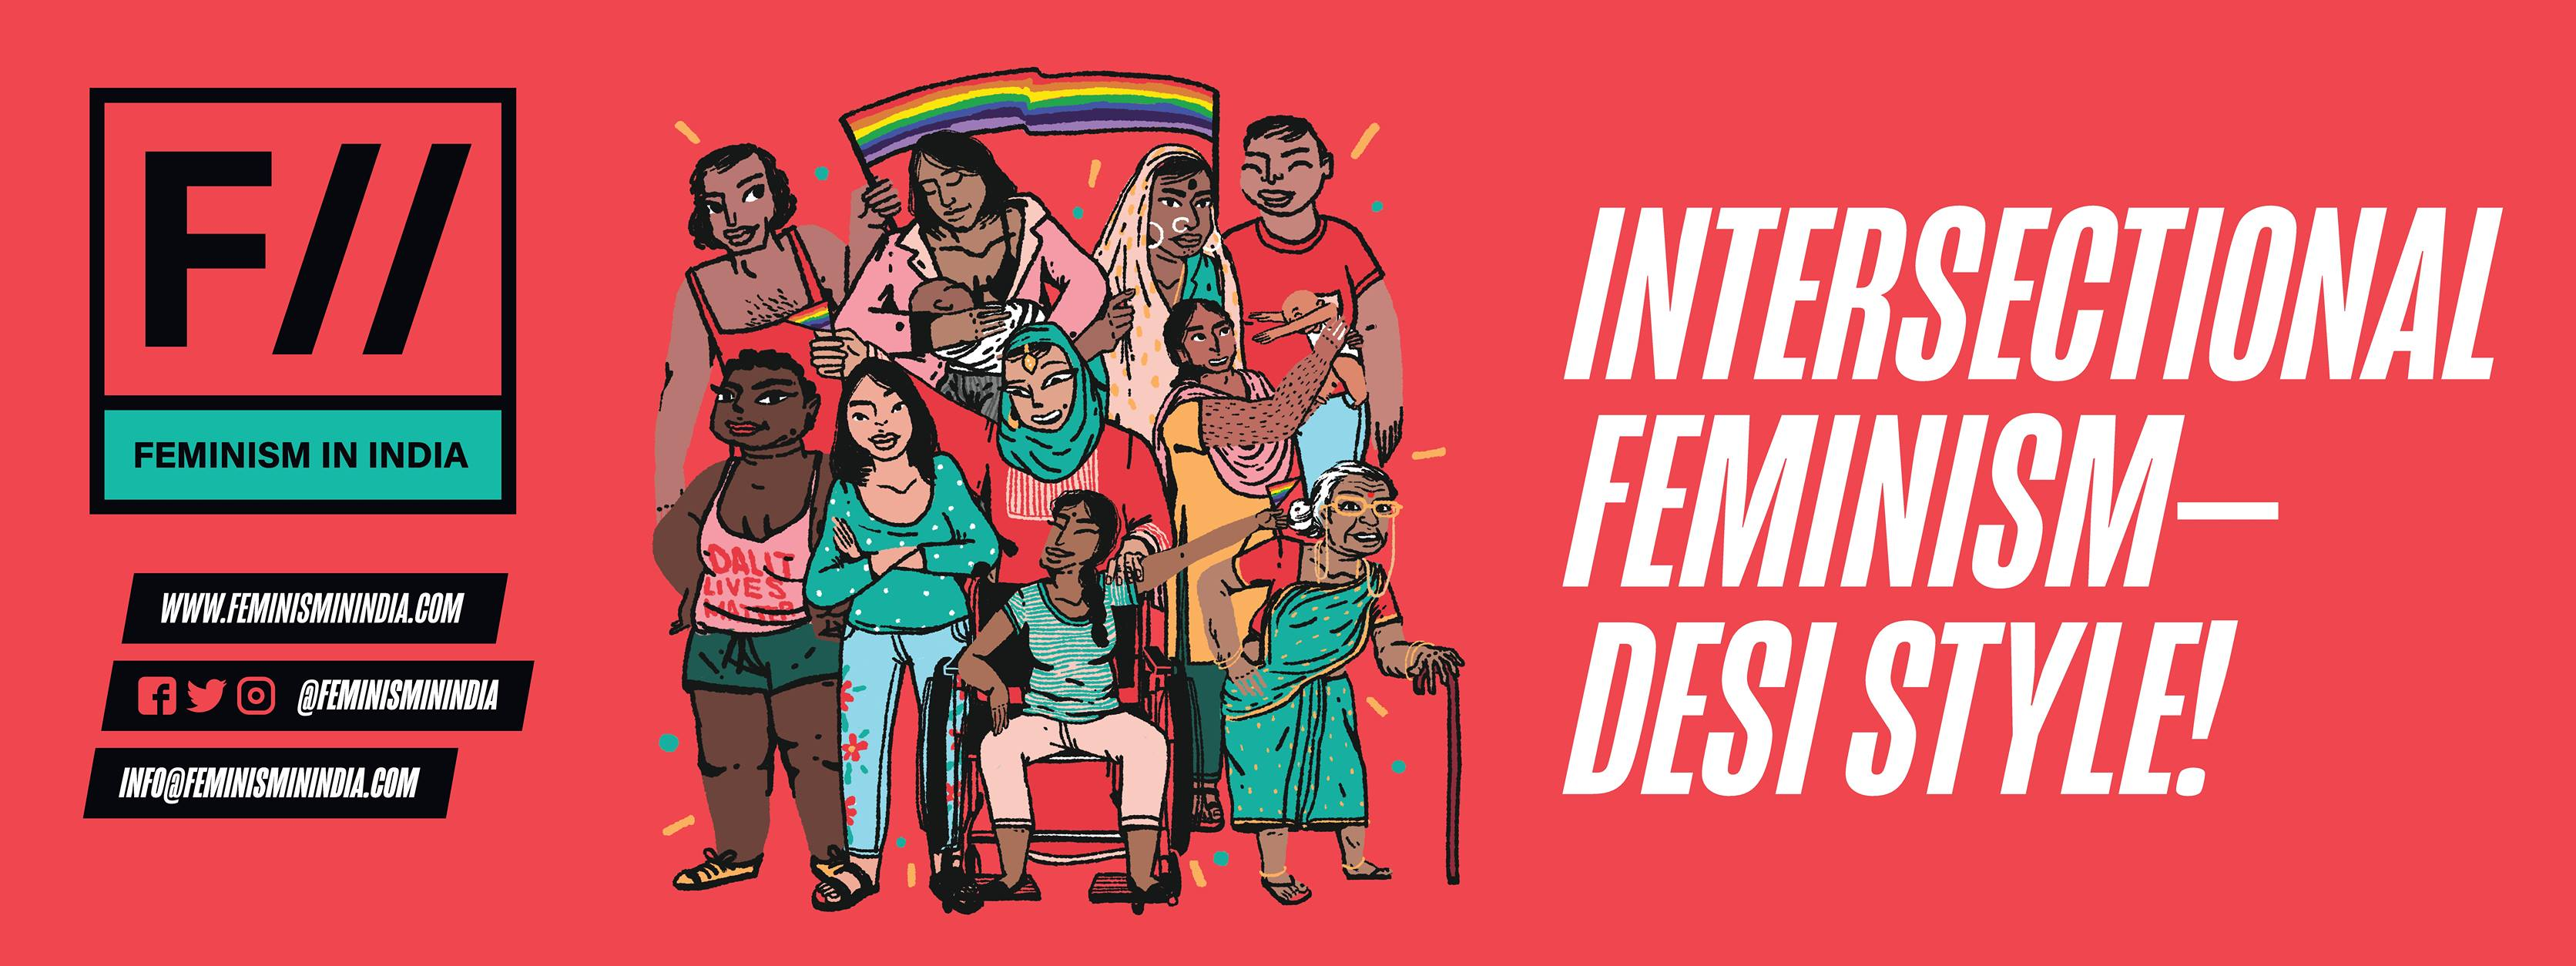 Donate to keep FII ad-free. Support intersectional feminist media